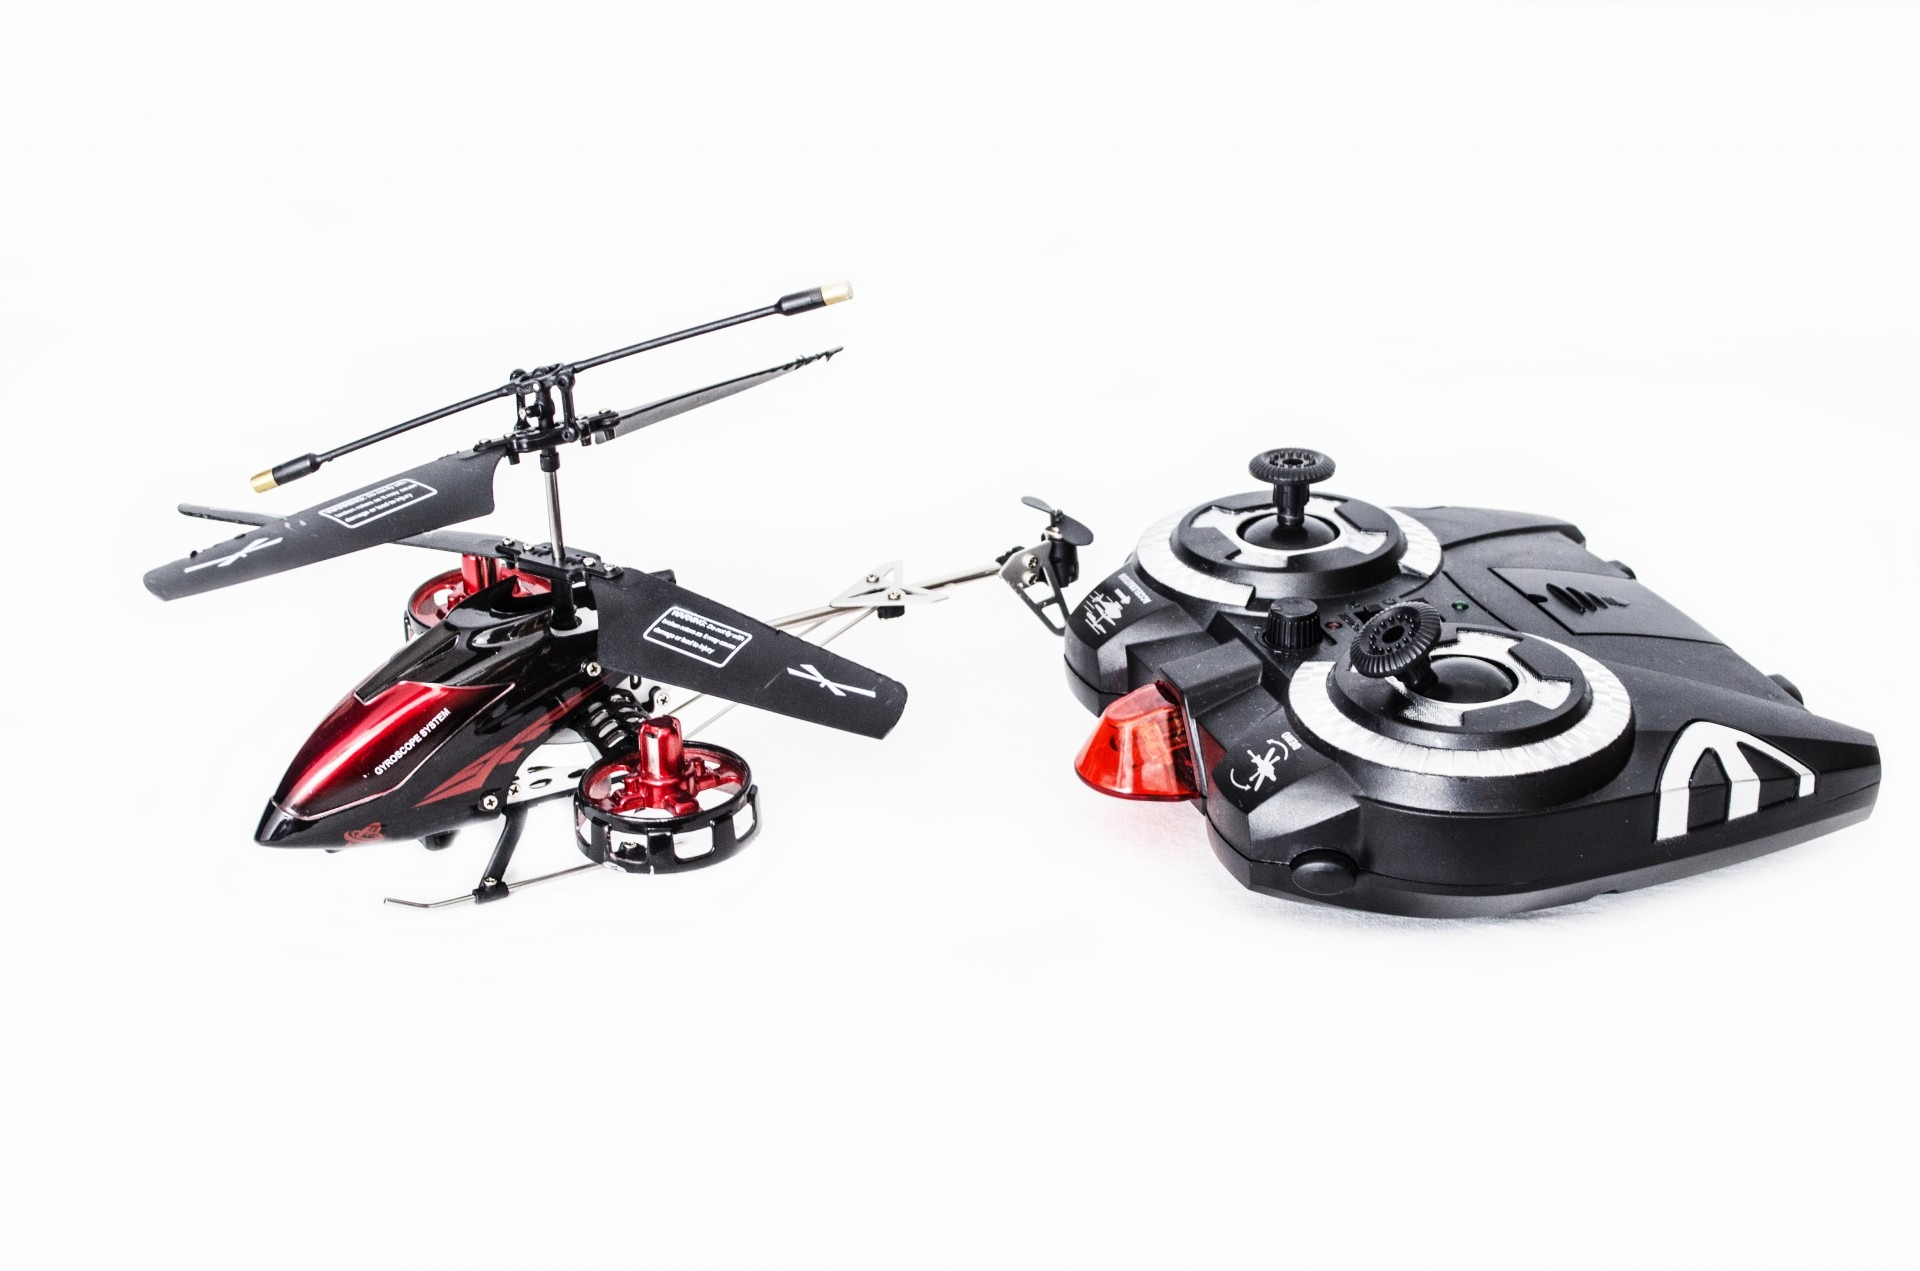 Remote Control Helicopters For Sale Maximum Marketer